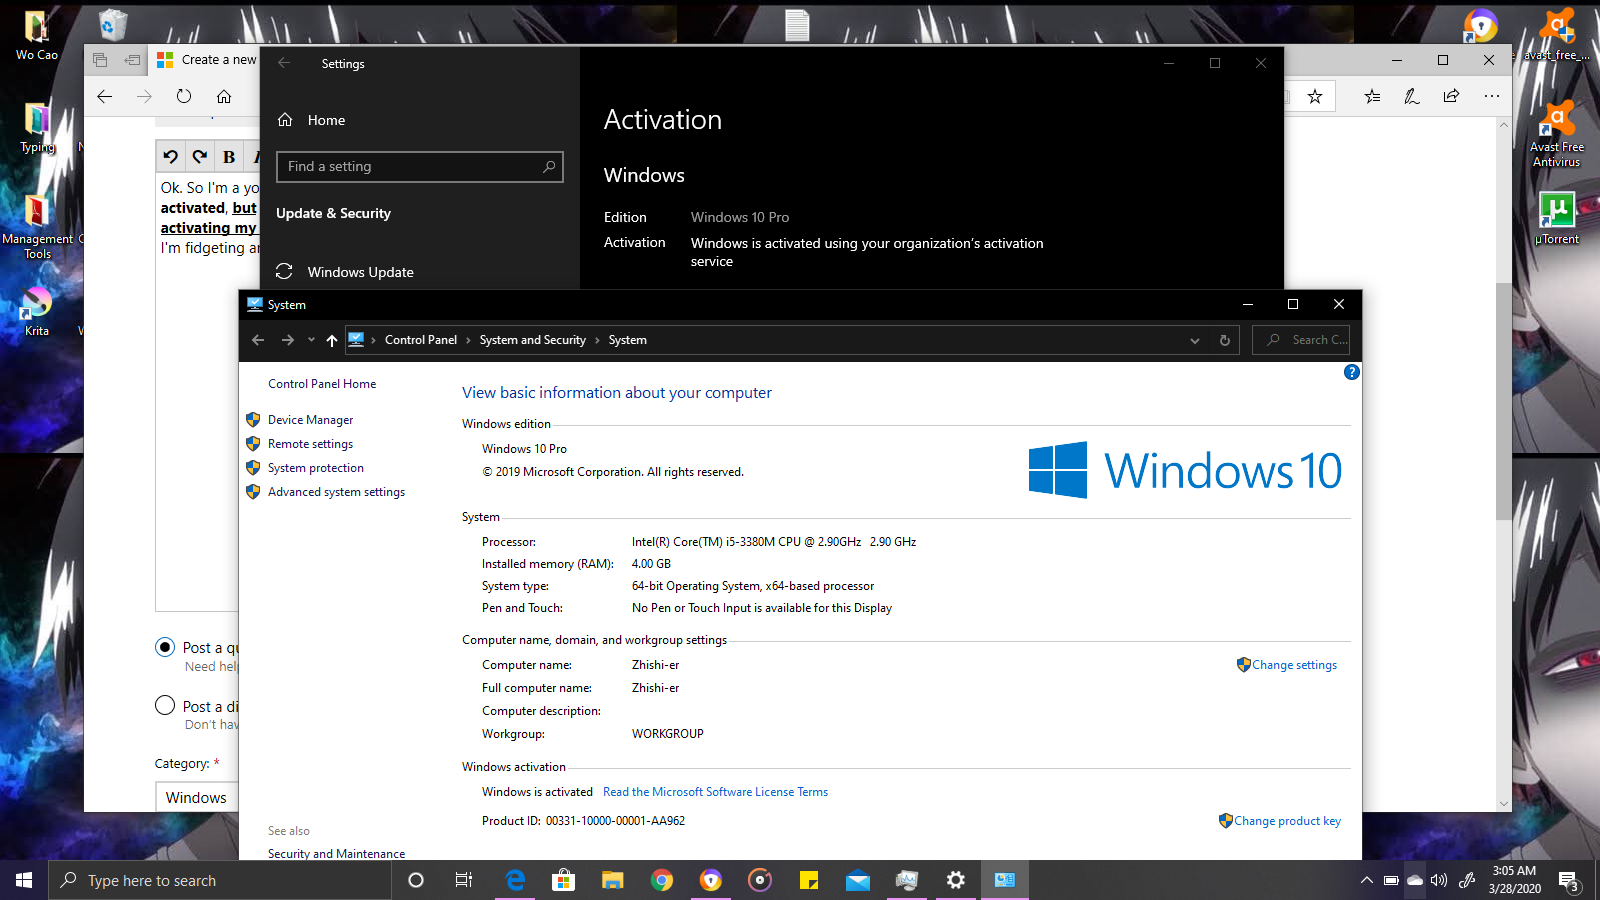 Windows 10 Pro Activation - Windows is activated using your organization's activation service a0f93d8a-7636-40ca-918e-a003f66d5fc8?upload=true.png